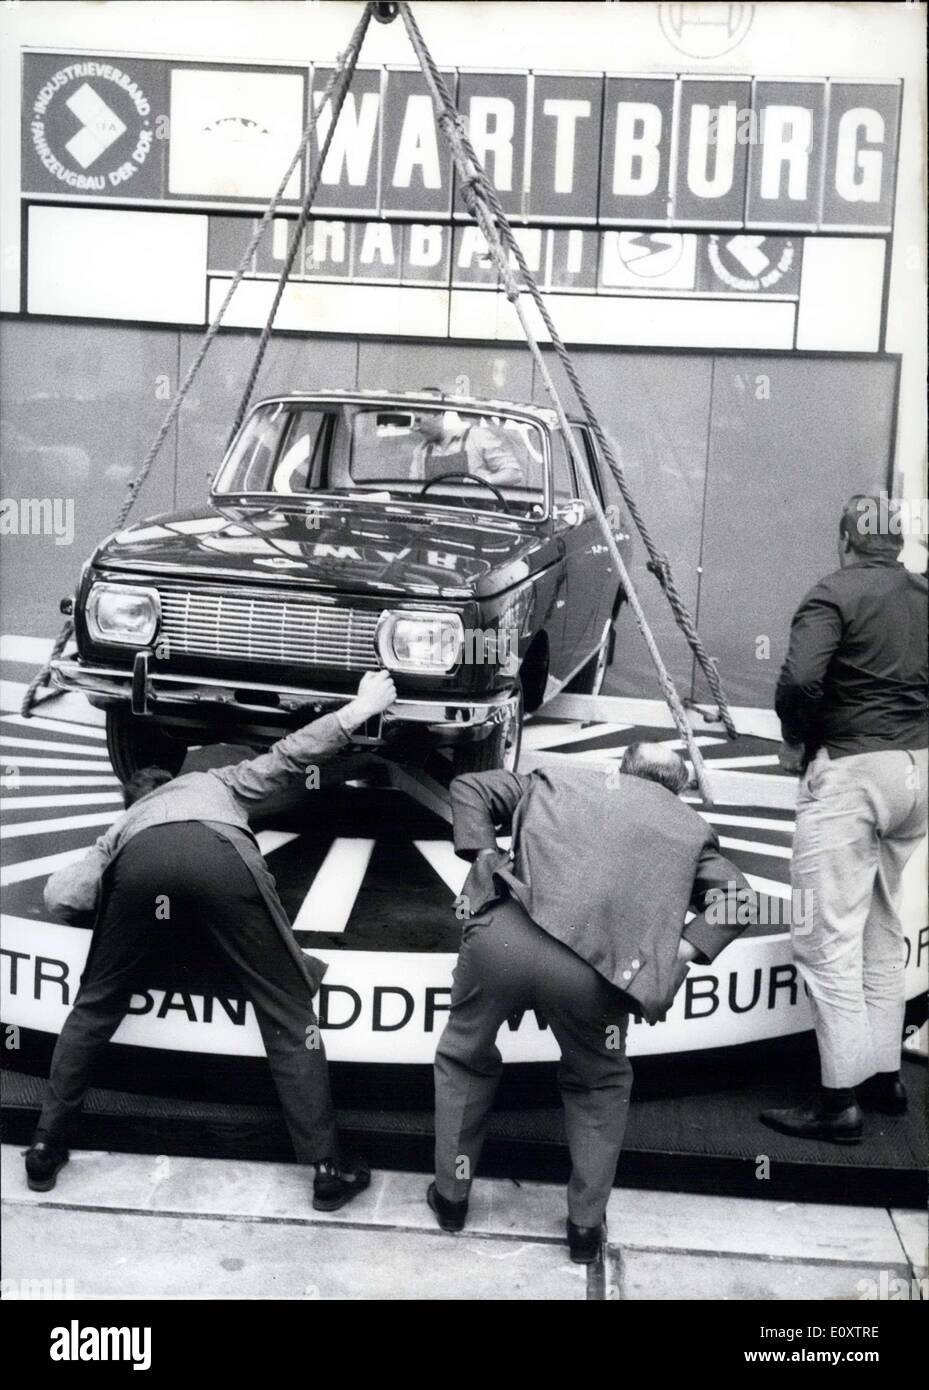 Sep. 14, 1967 - These visitors are at the 42nd International Automobile Fair in Frankfurt/Main. The car they are looking at is a new ''Wartburg'' from the DDR, not something you see every day. Interest in automobiles from Eastern Europe was big at the fair. - Stock Image